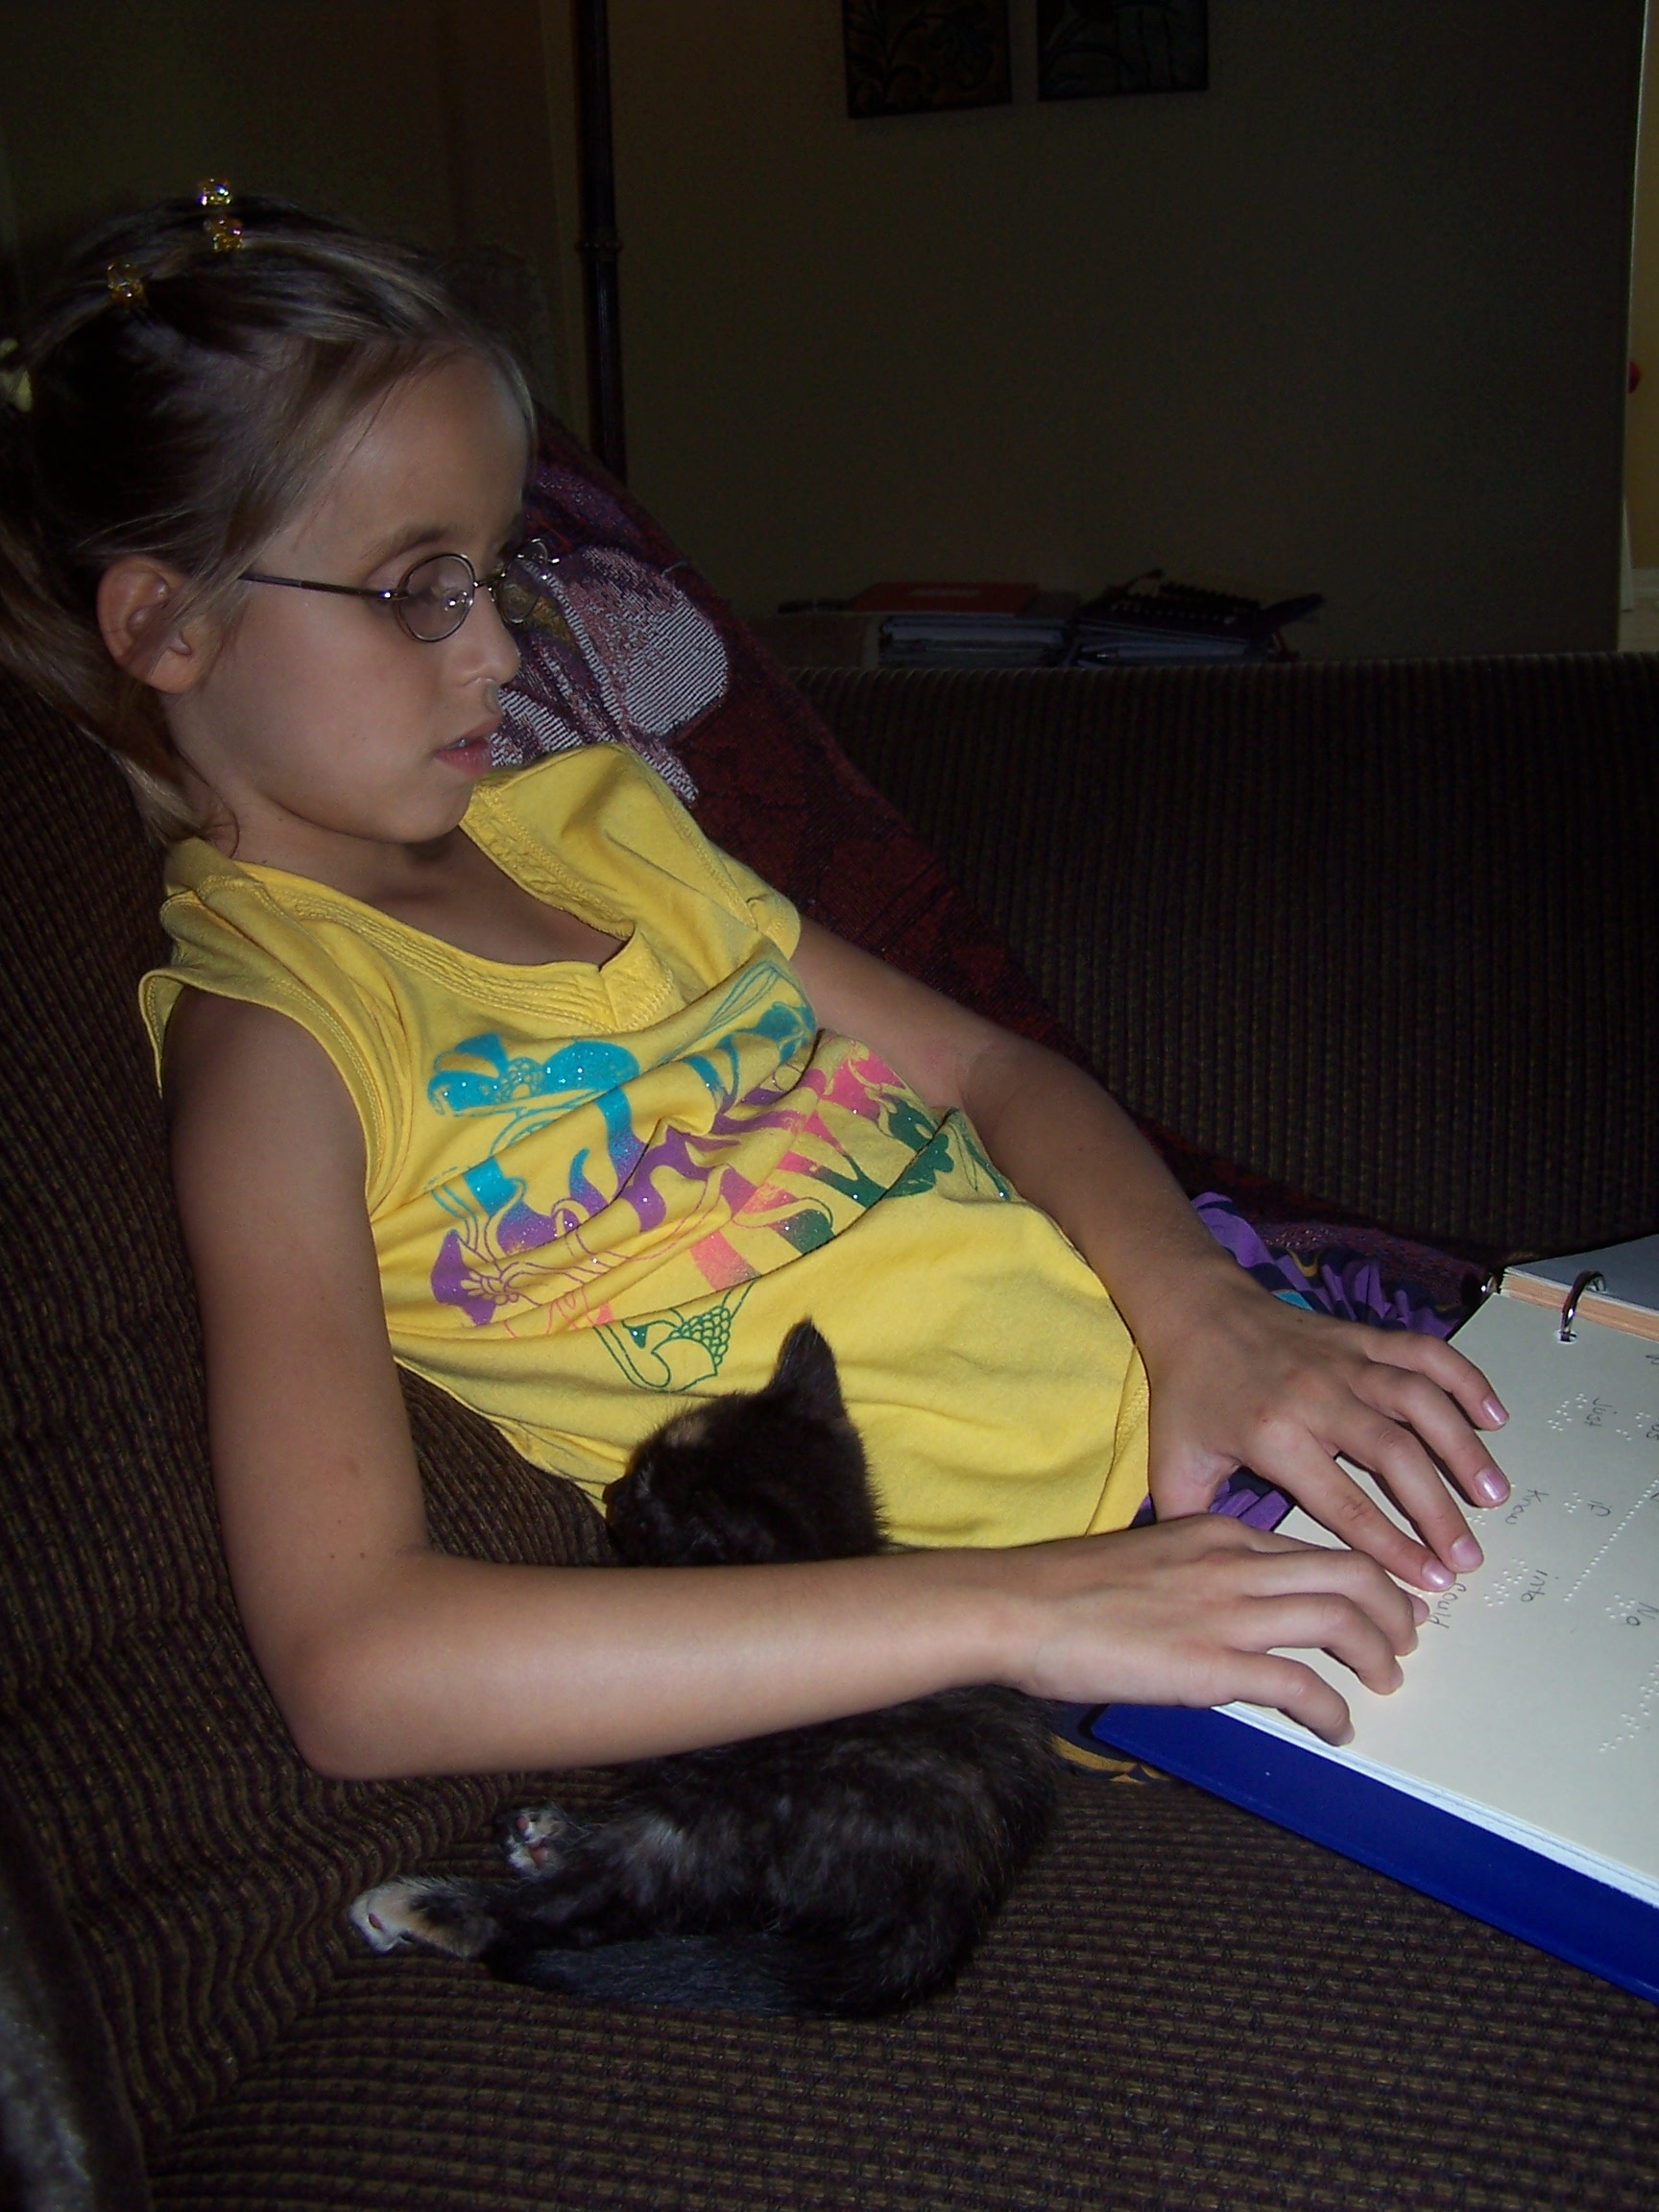 Lindsay chills with a kitten while reading